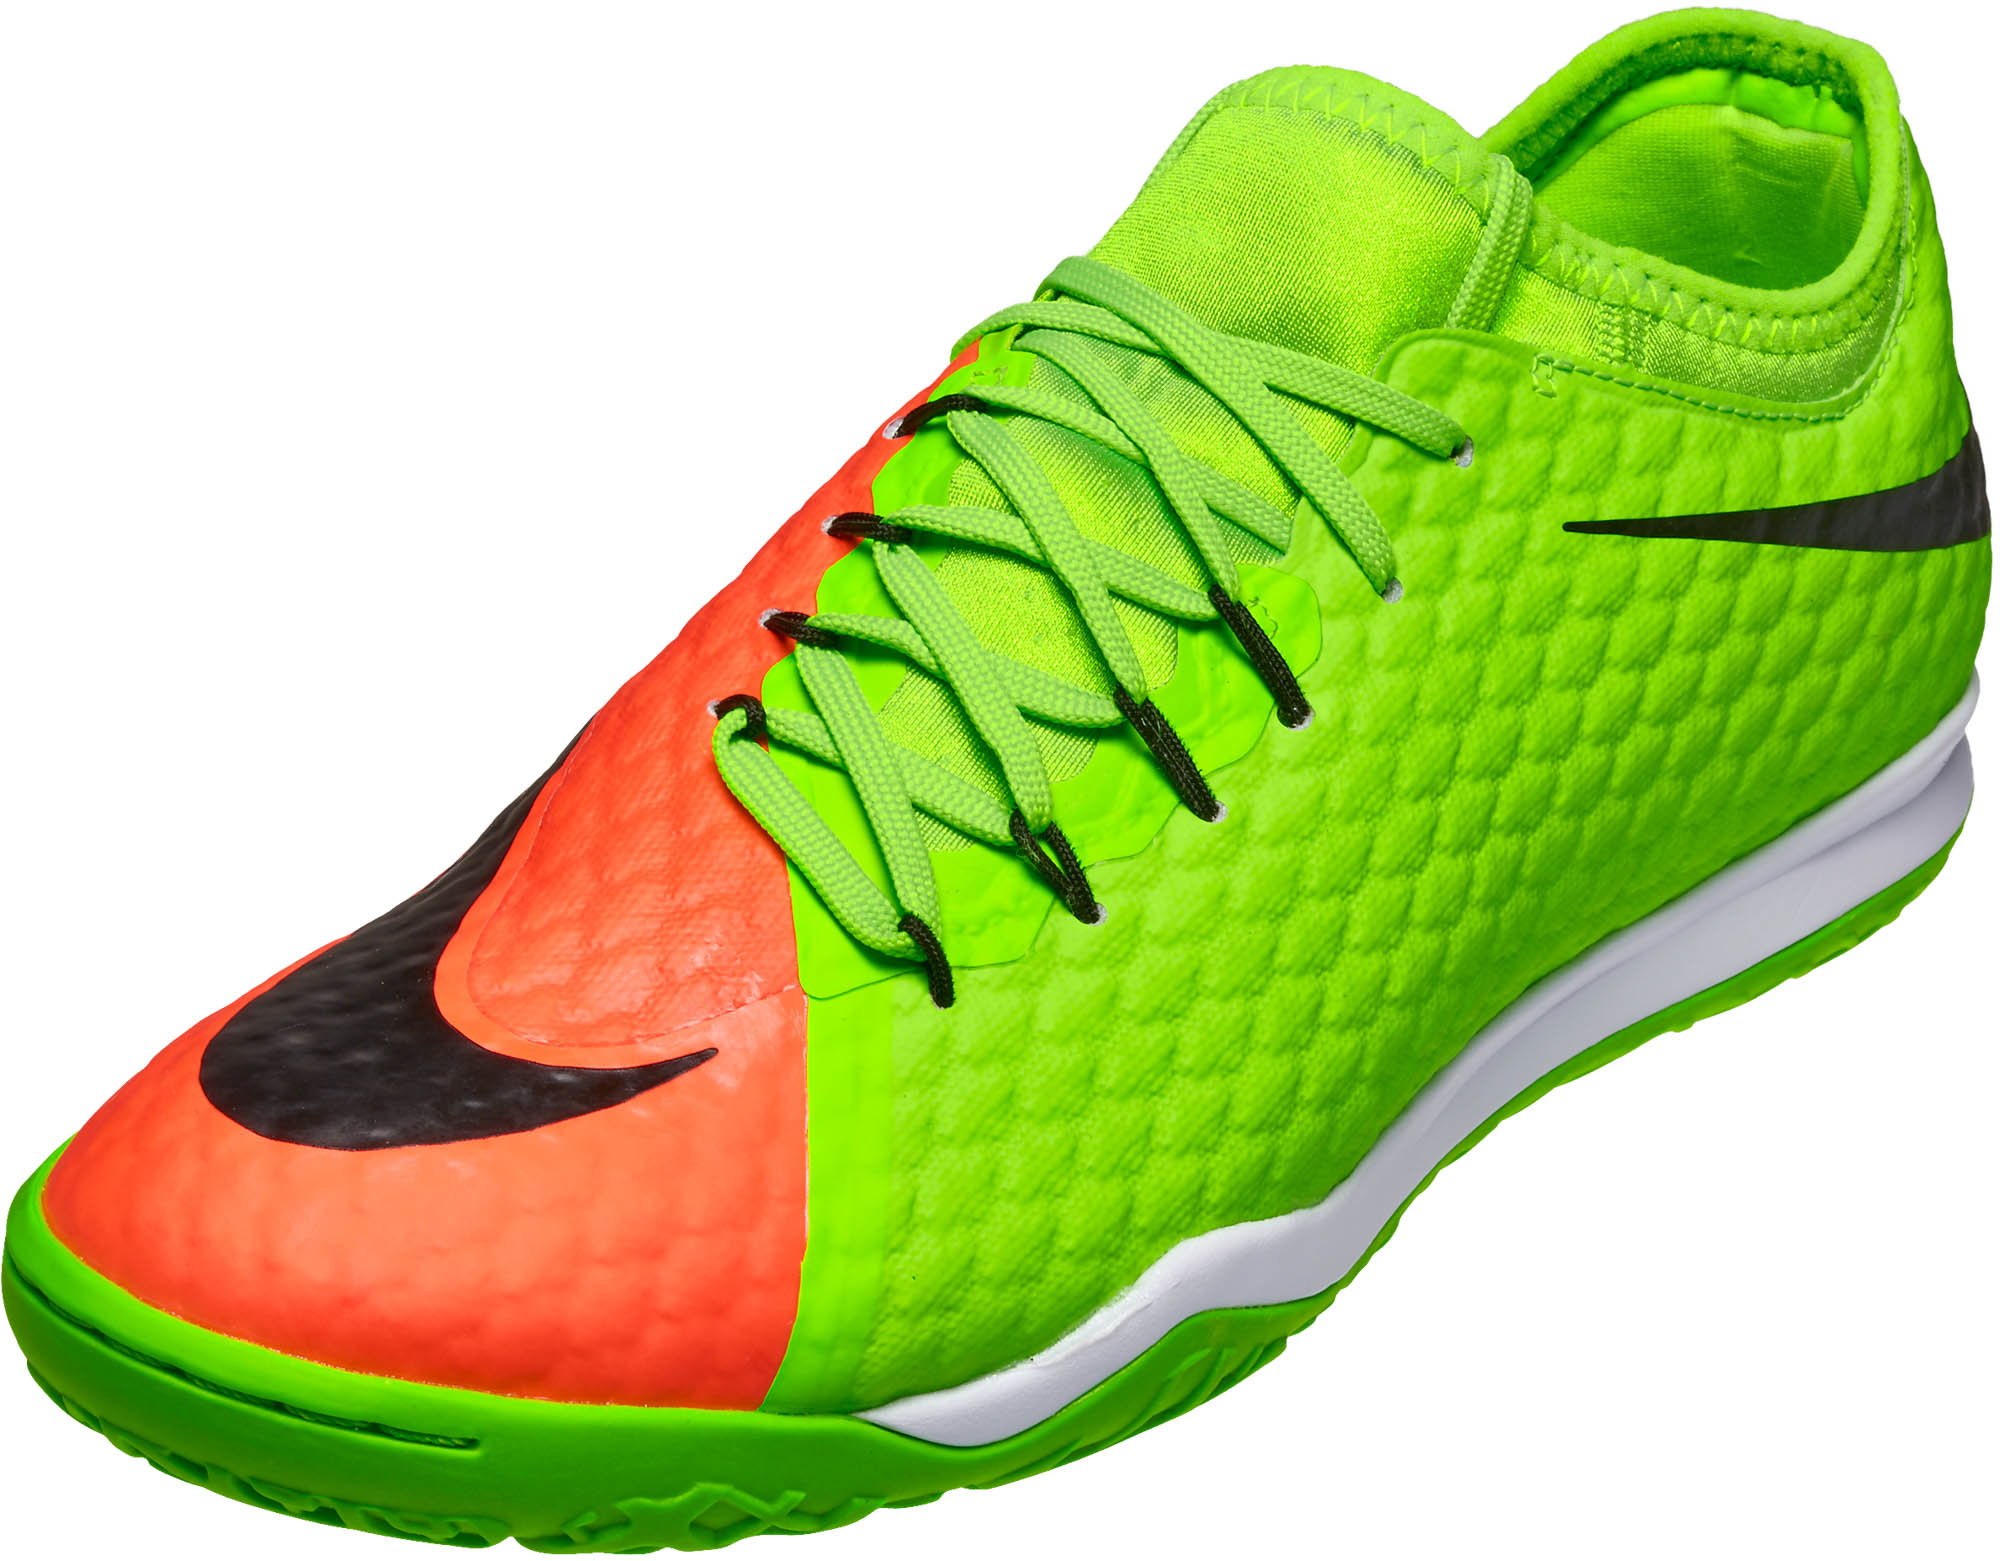 Nike HypervenomX Finale II IC - Electric Green & Hyper ...